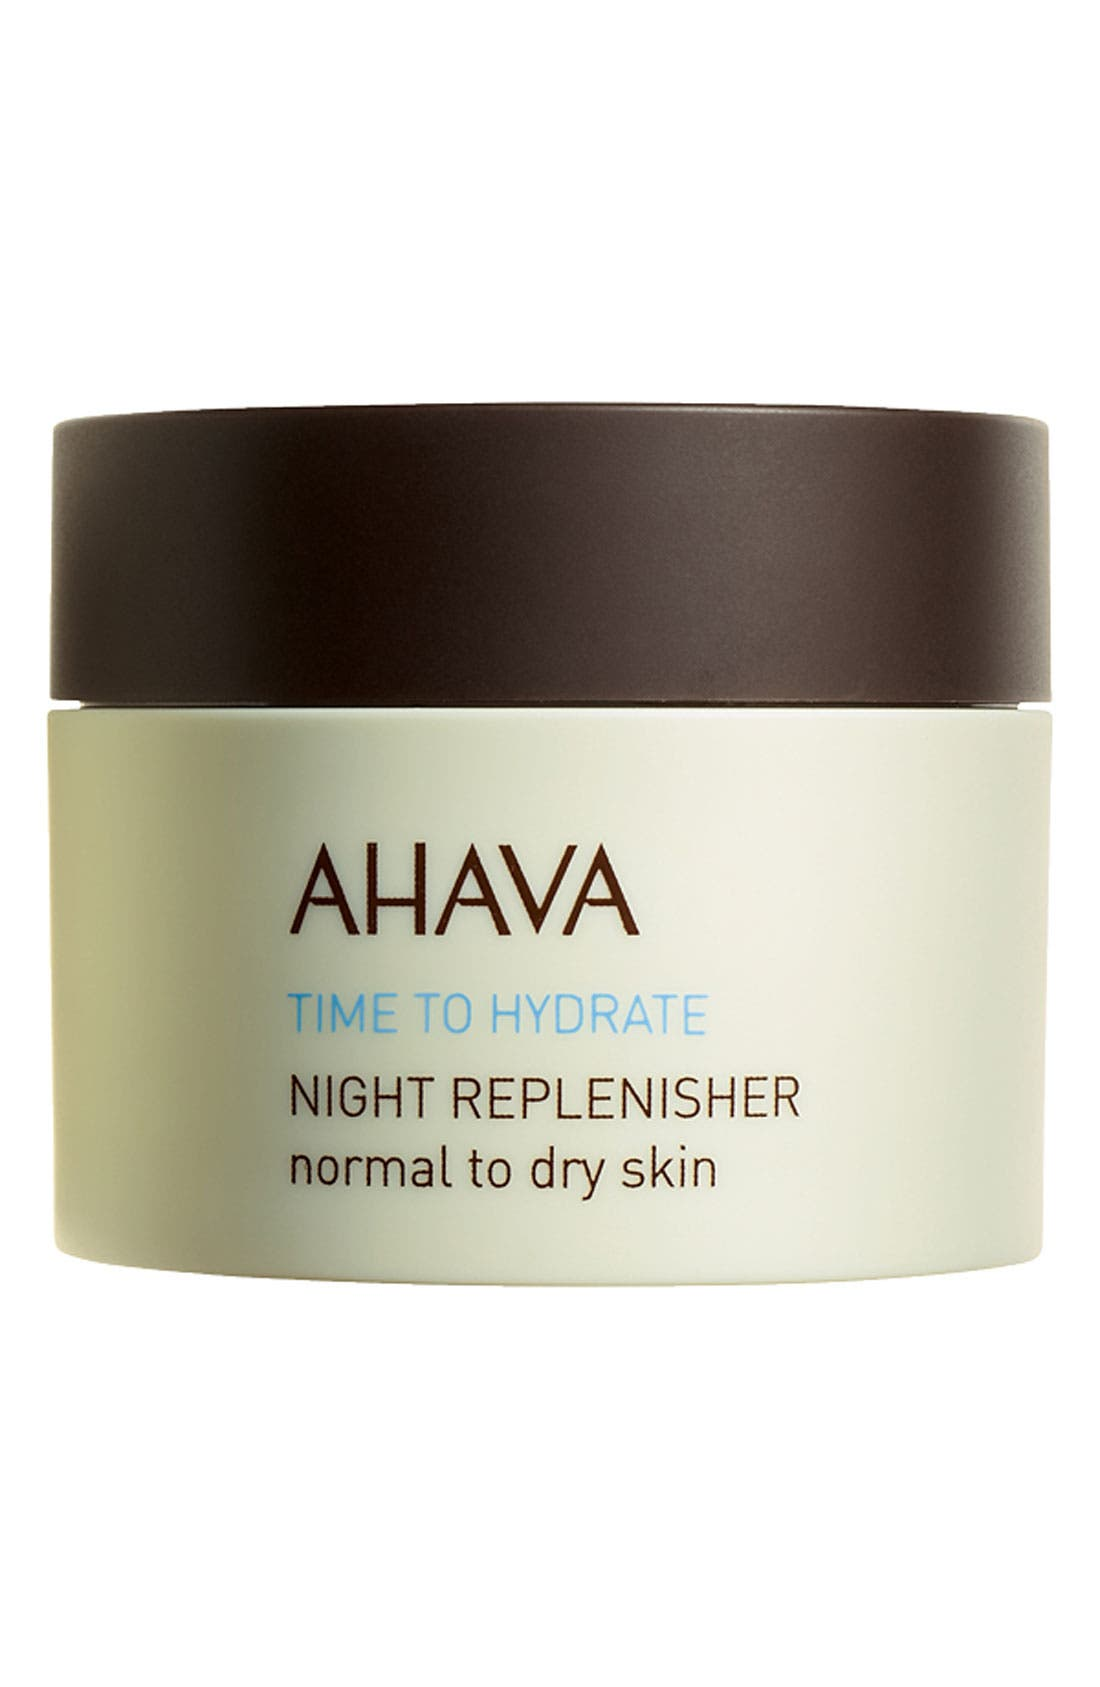 'Time to Hydrate' Night Replenisher,                             Main thumbnail 1, color,